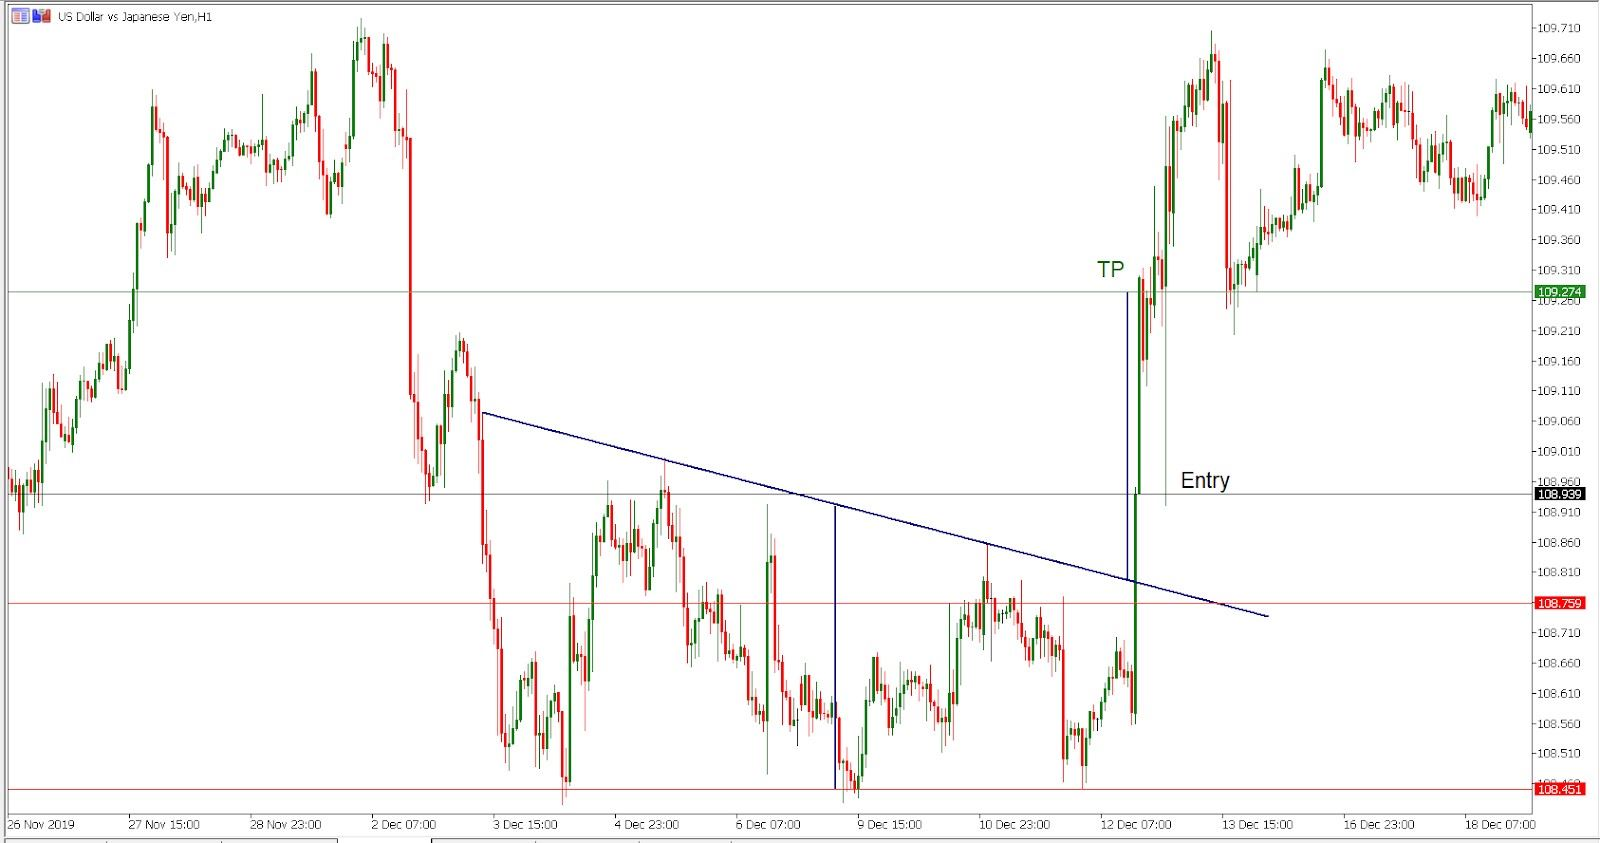 USD/JPY H1 chart - Trading the triple bottom pattern